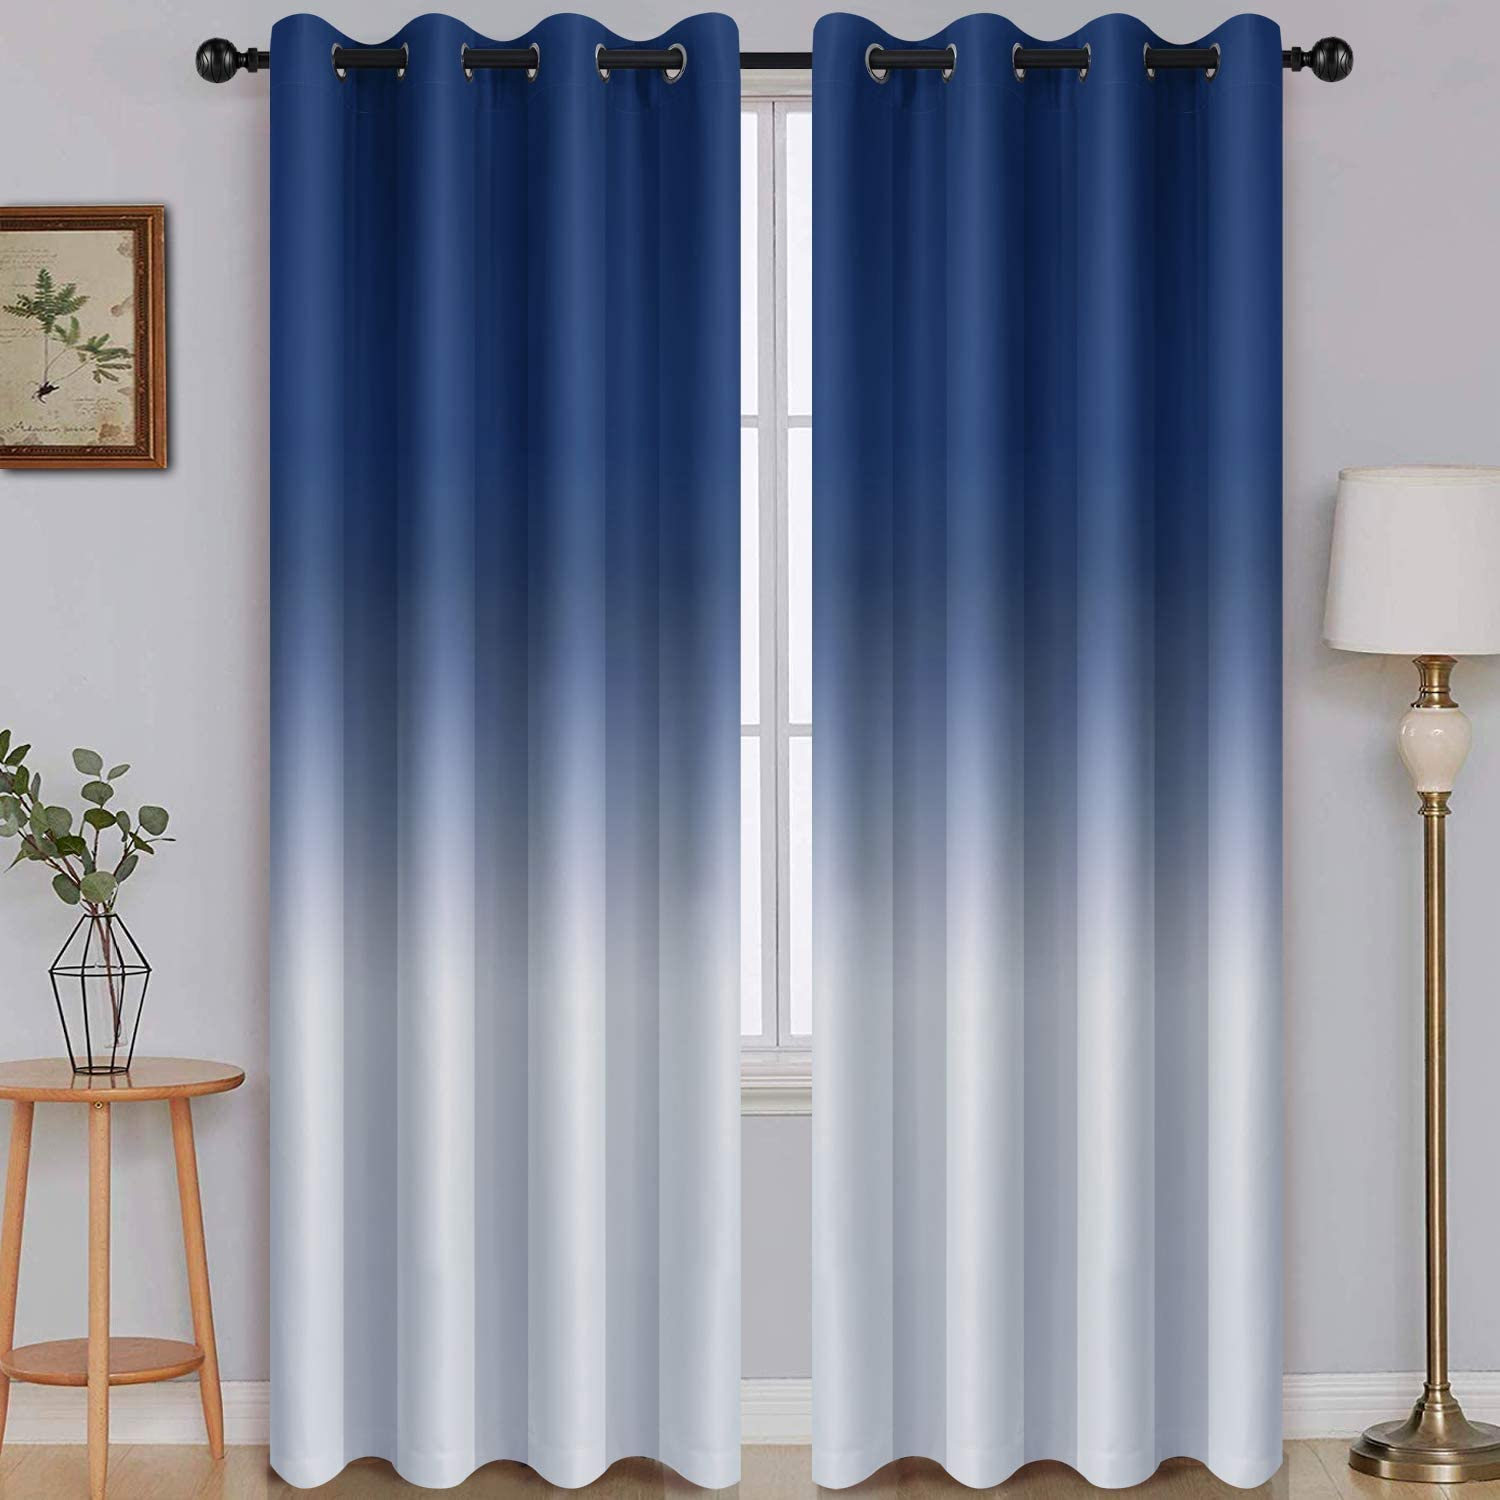 SimpleHome Ombre Room Darkening Max 68% OFF Curtains Bloc for Light Bedroom Ranking TOP12